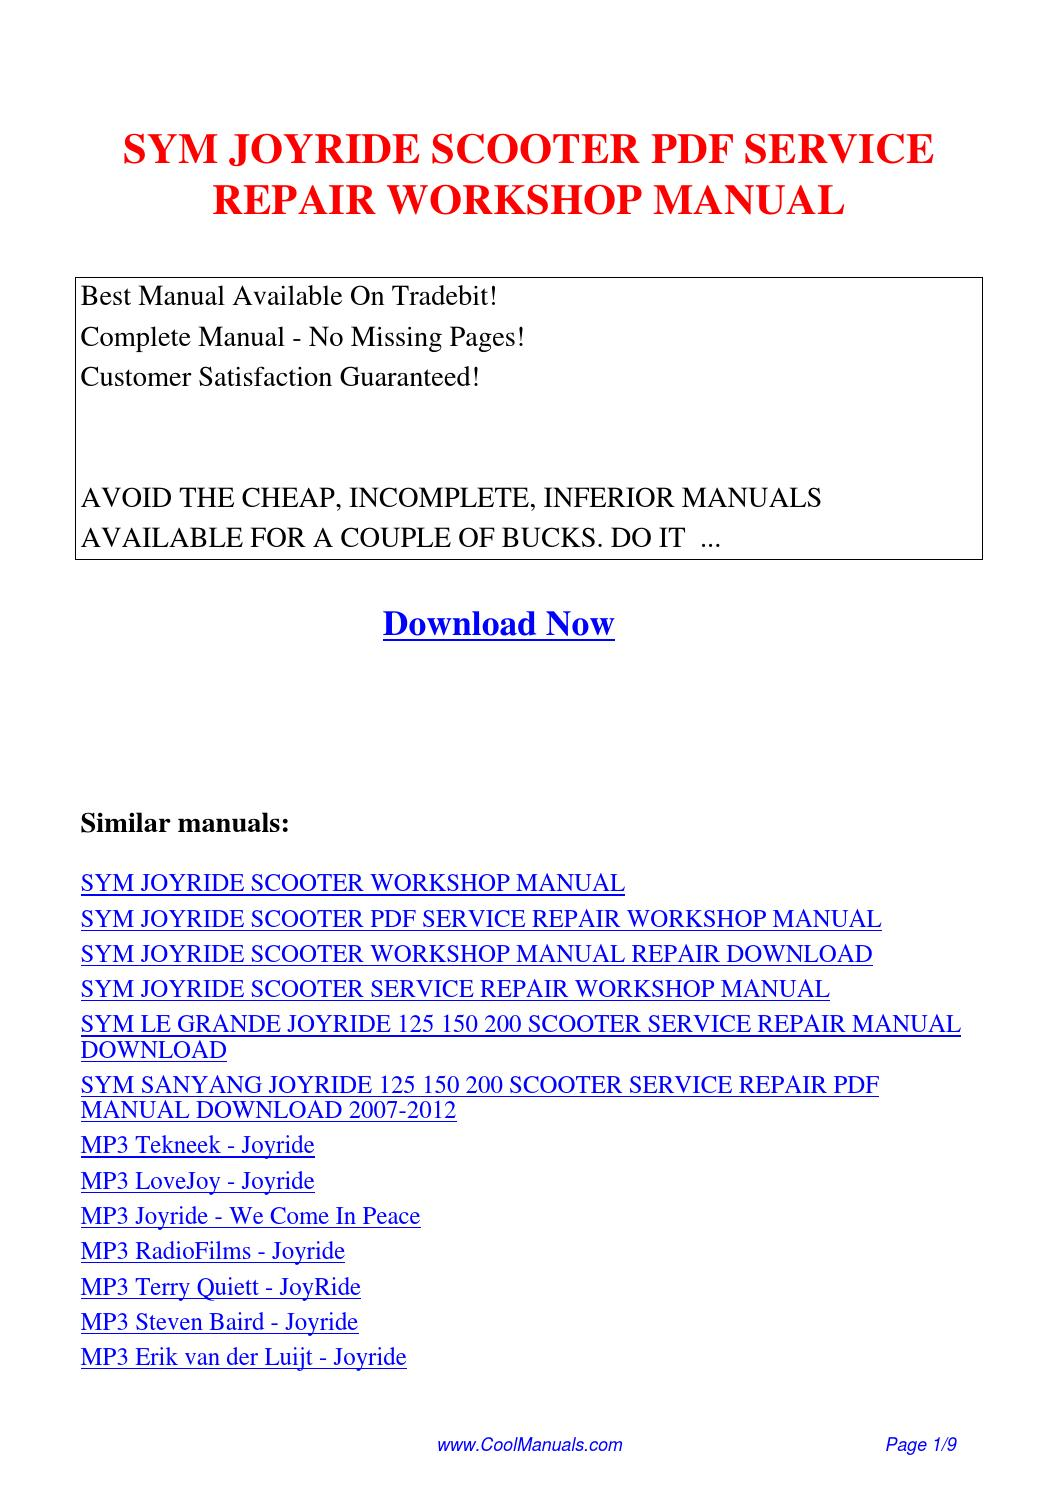 SYM JOYRIDE SCOOTER SERVICE REPAIR WORKSHOP MANUAL.pdf by Guang Hui - issuu